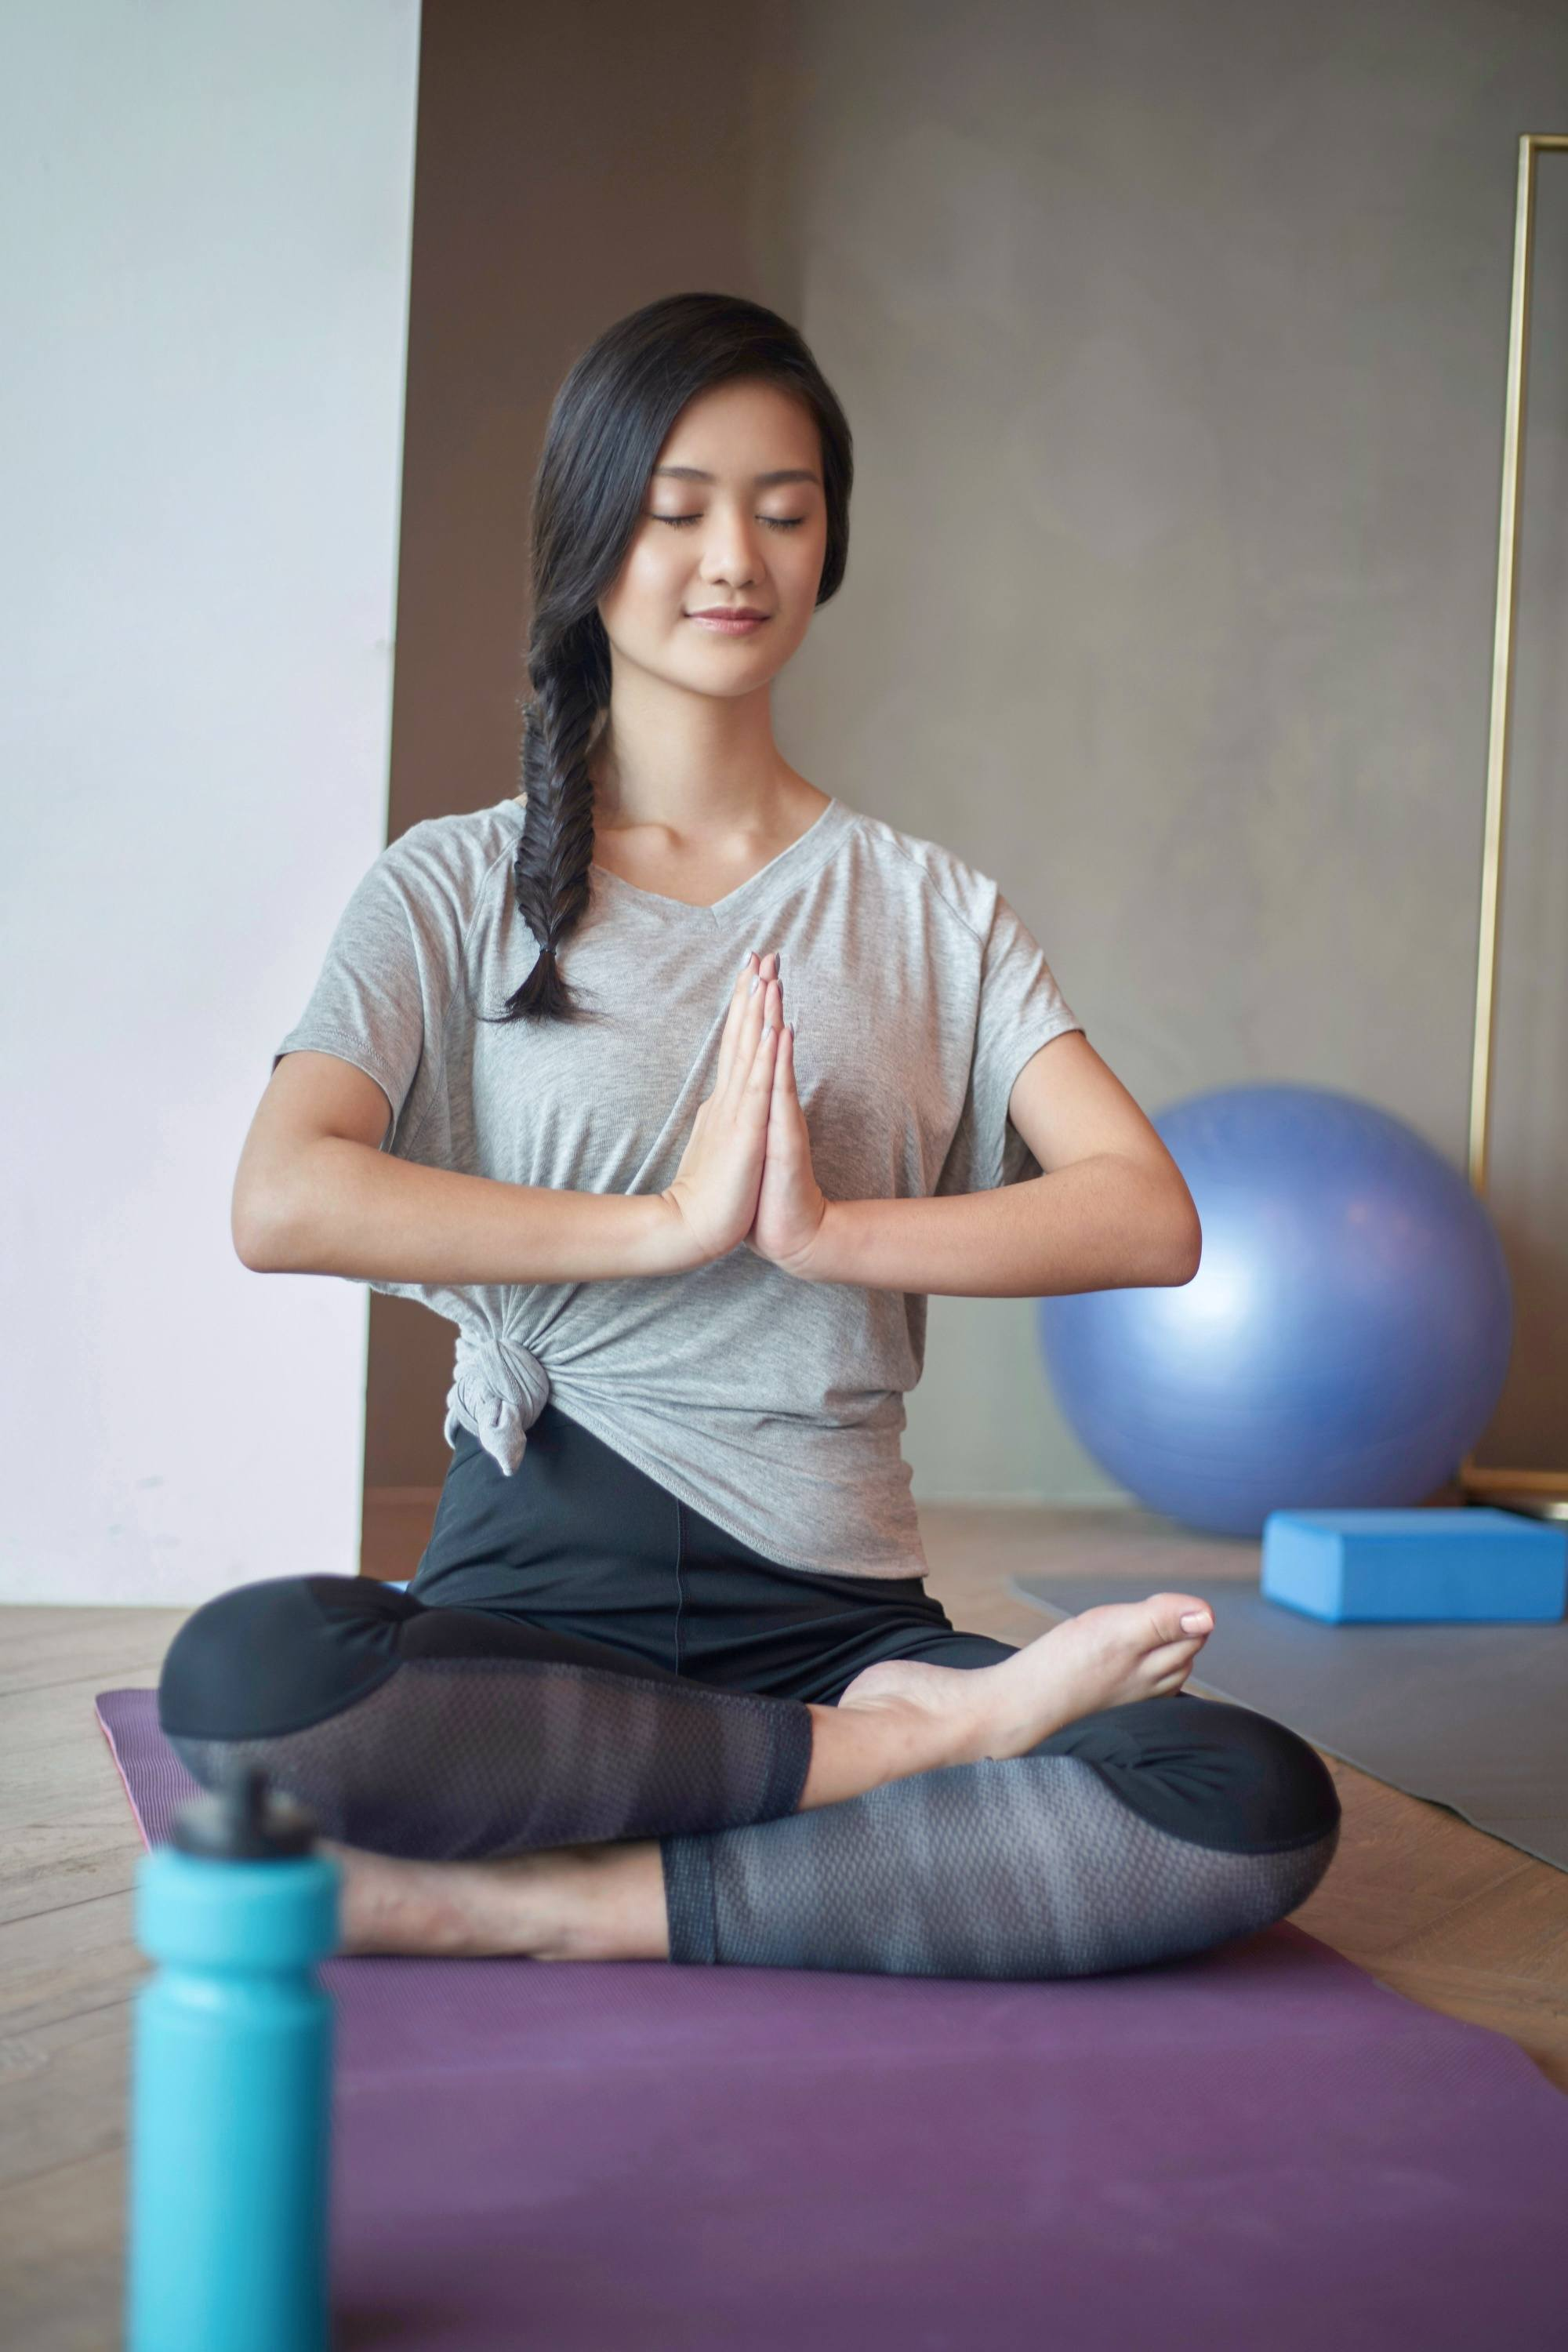 International Women's Day: Asian woman with long black hair in fishtail braid doing yoga in a room